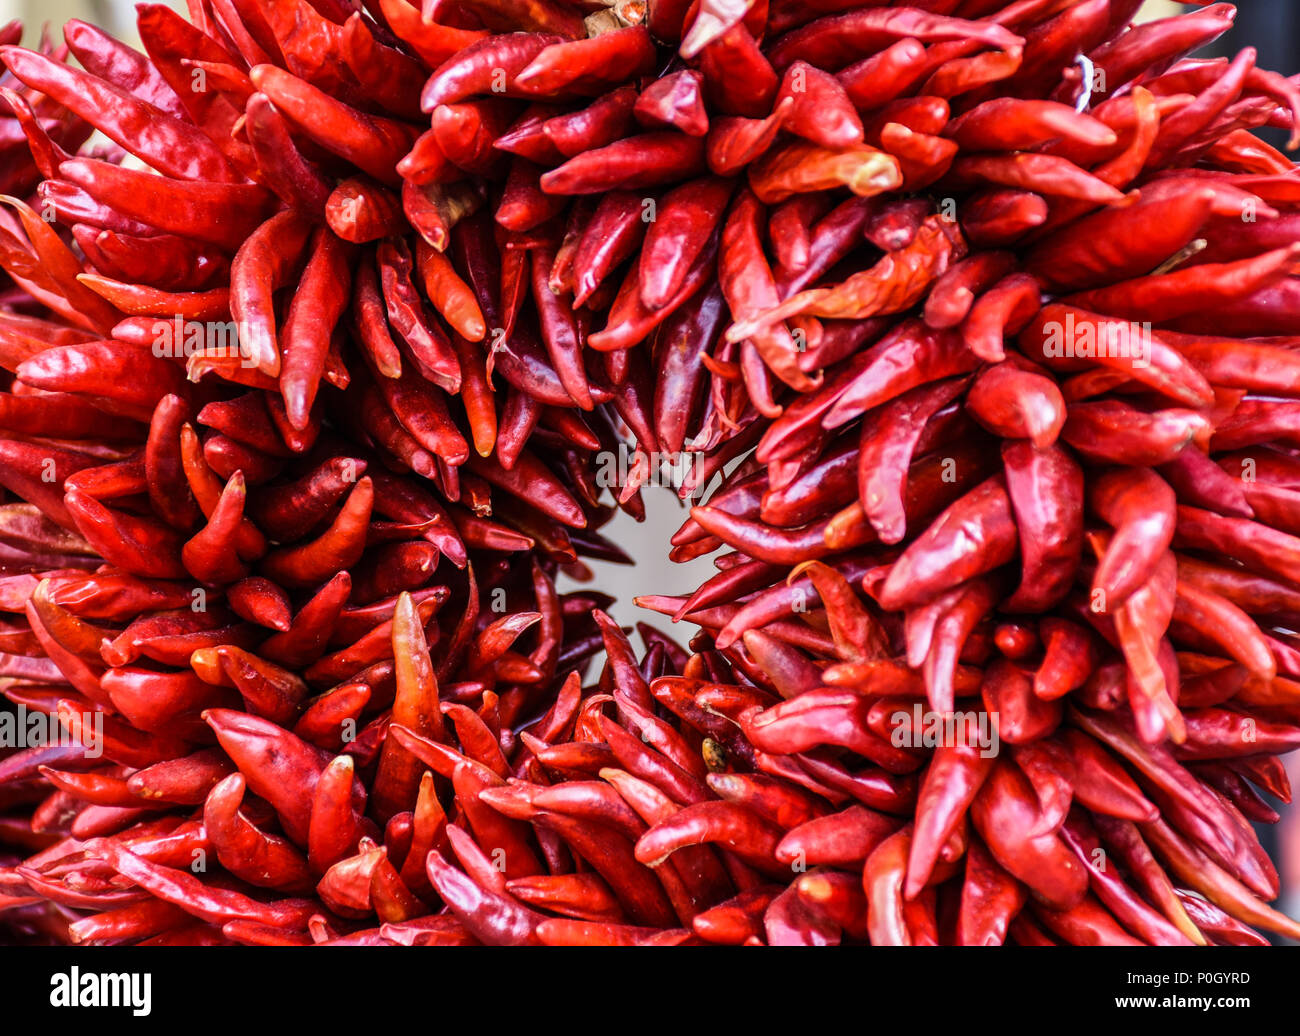 Ring of fire wreath of red, dried chili peppers from Santa Fe, New Mexico - Stock Image